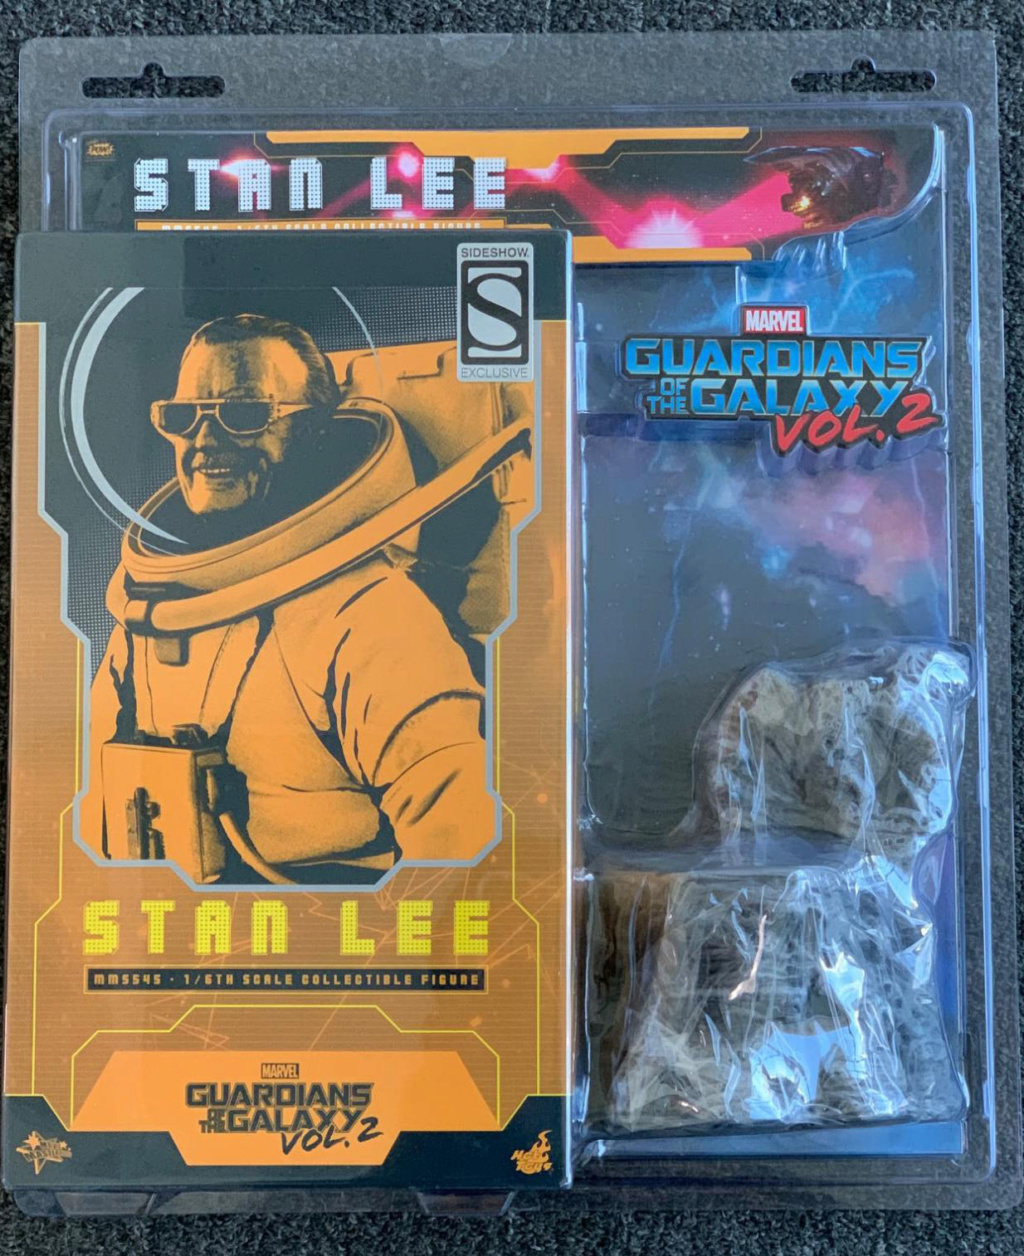 NEW PRODUCT: HOT TOYS: GUARDIANS OF THE GALAXY VOL. 2 STAN LEE® 1/6TH SCALE COLLECTIBLE FIGURE Img_3410